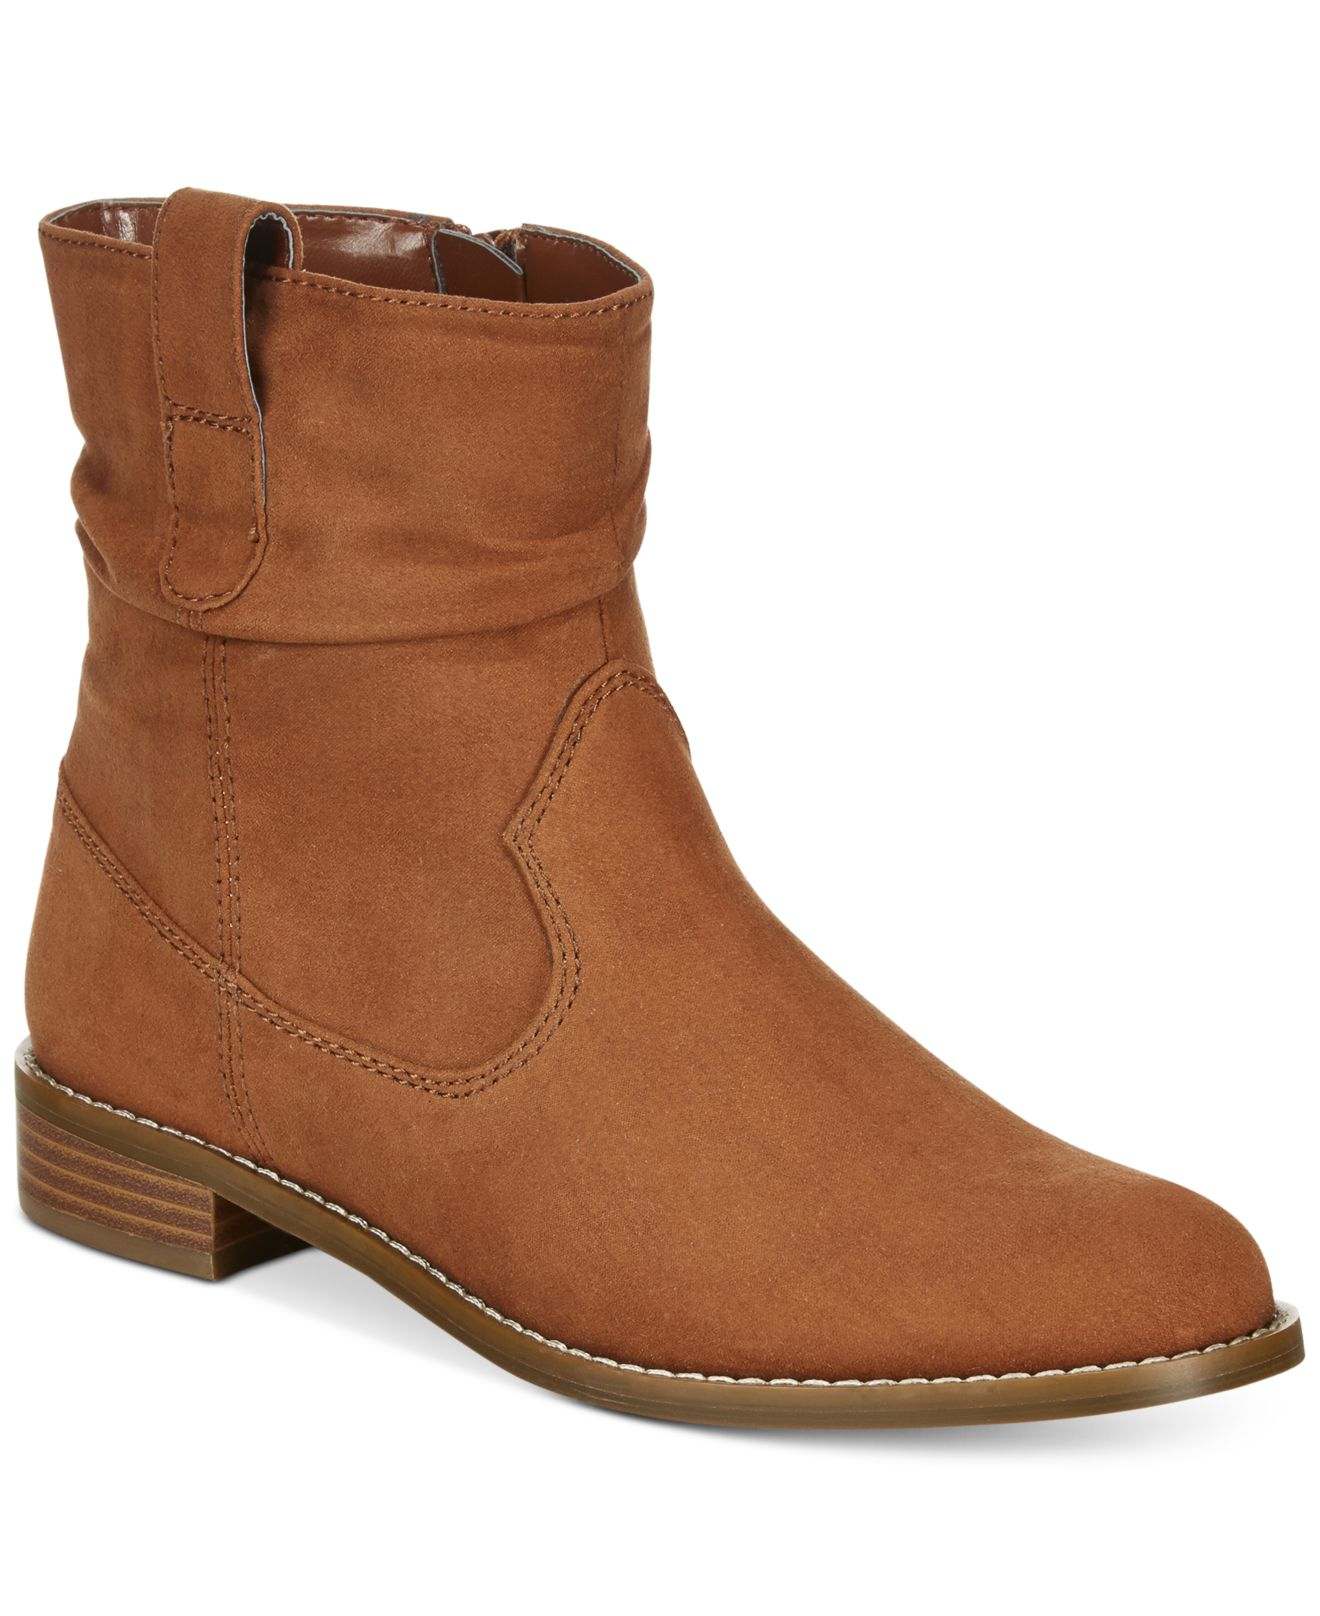 style co pagee slouchy booties only at macy s in brown